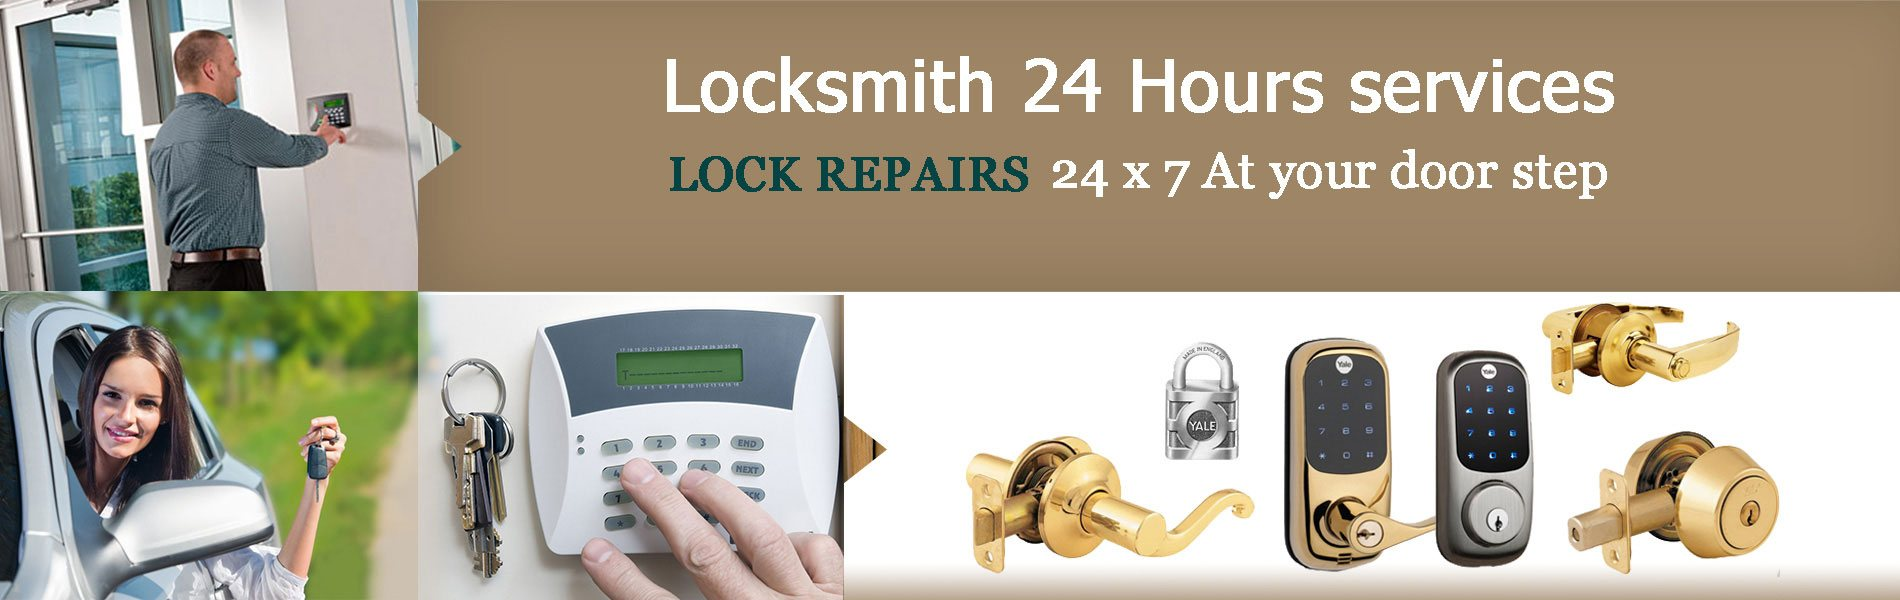 Elite Locksmith Services Columbus, OH 614-347-6542